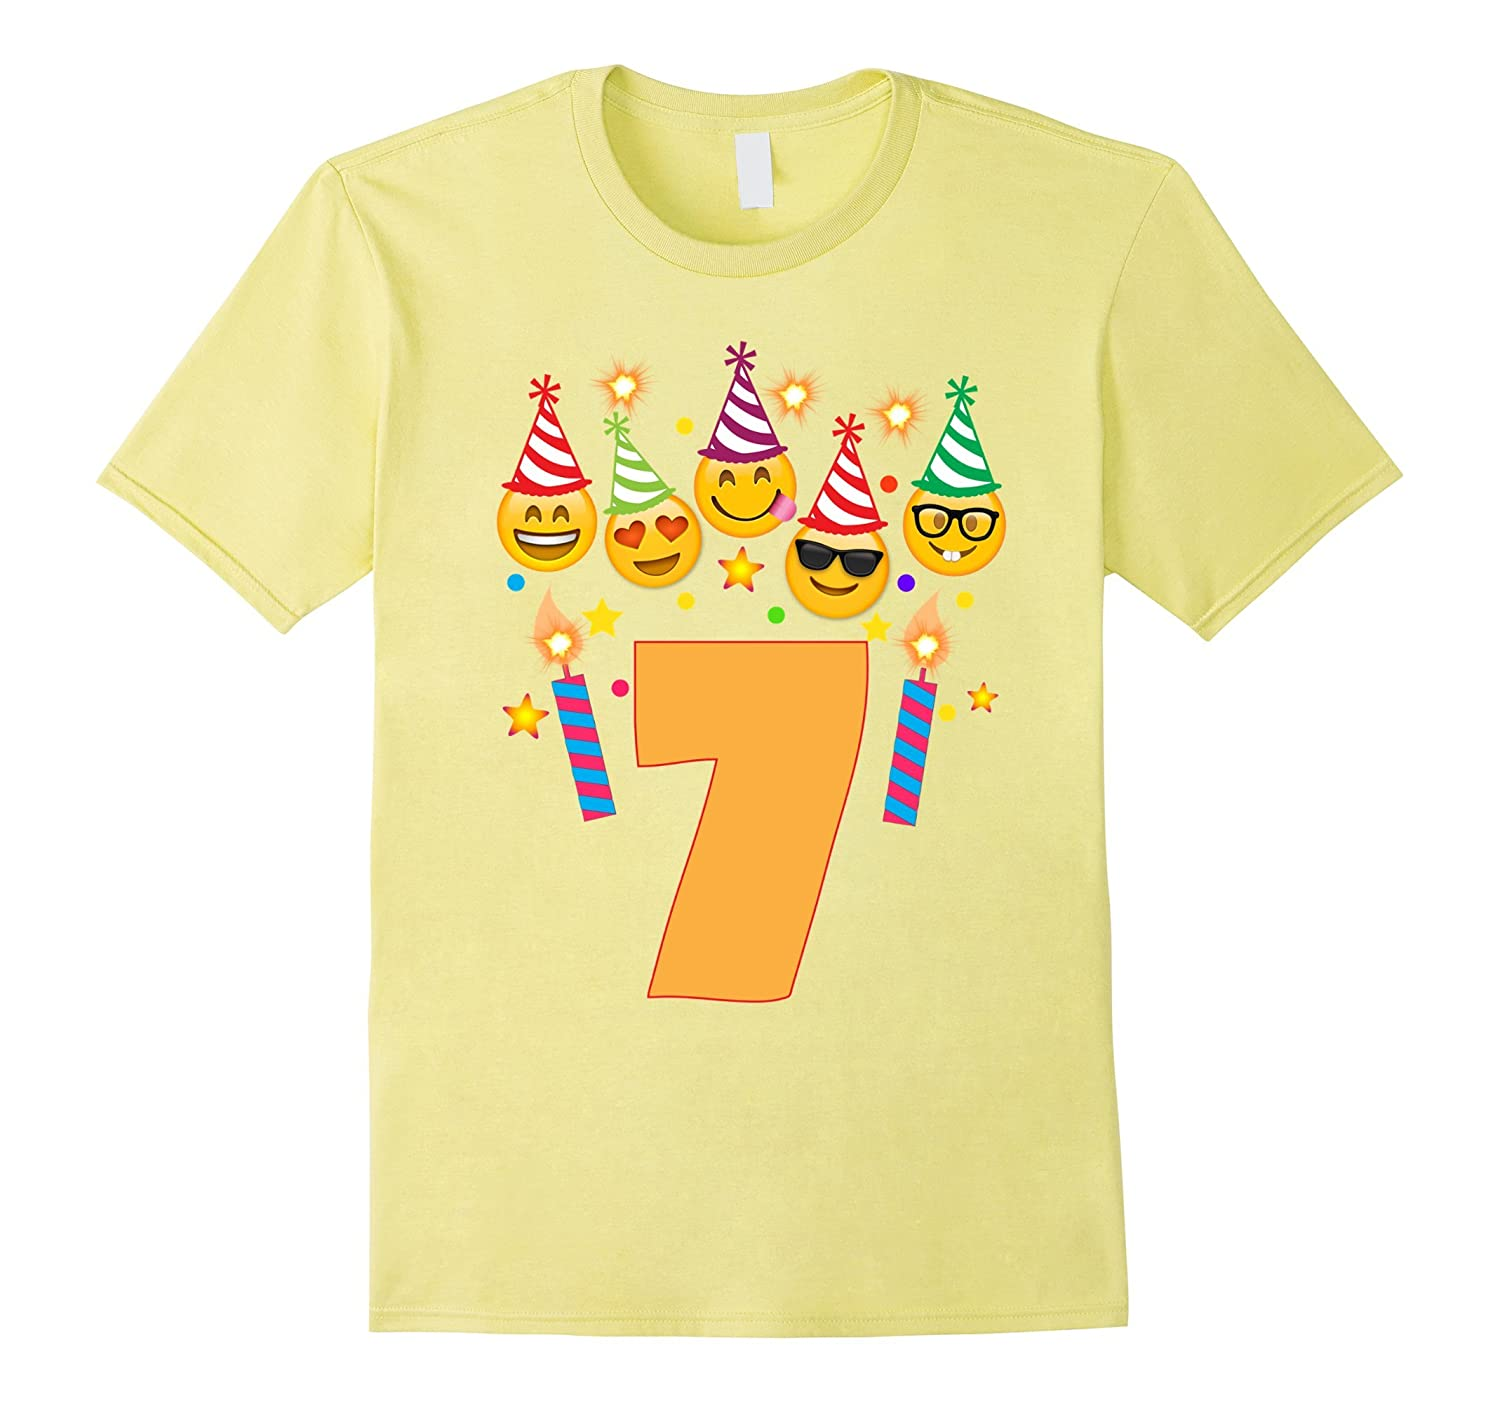 Emoji Birthday Shirt For 7 Seven Year Old Girl Boy Toddler